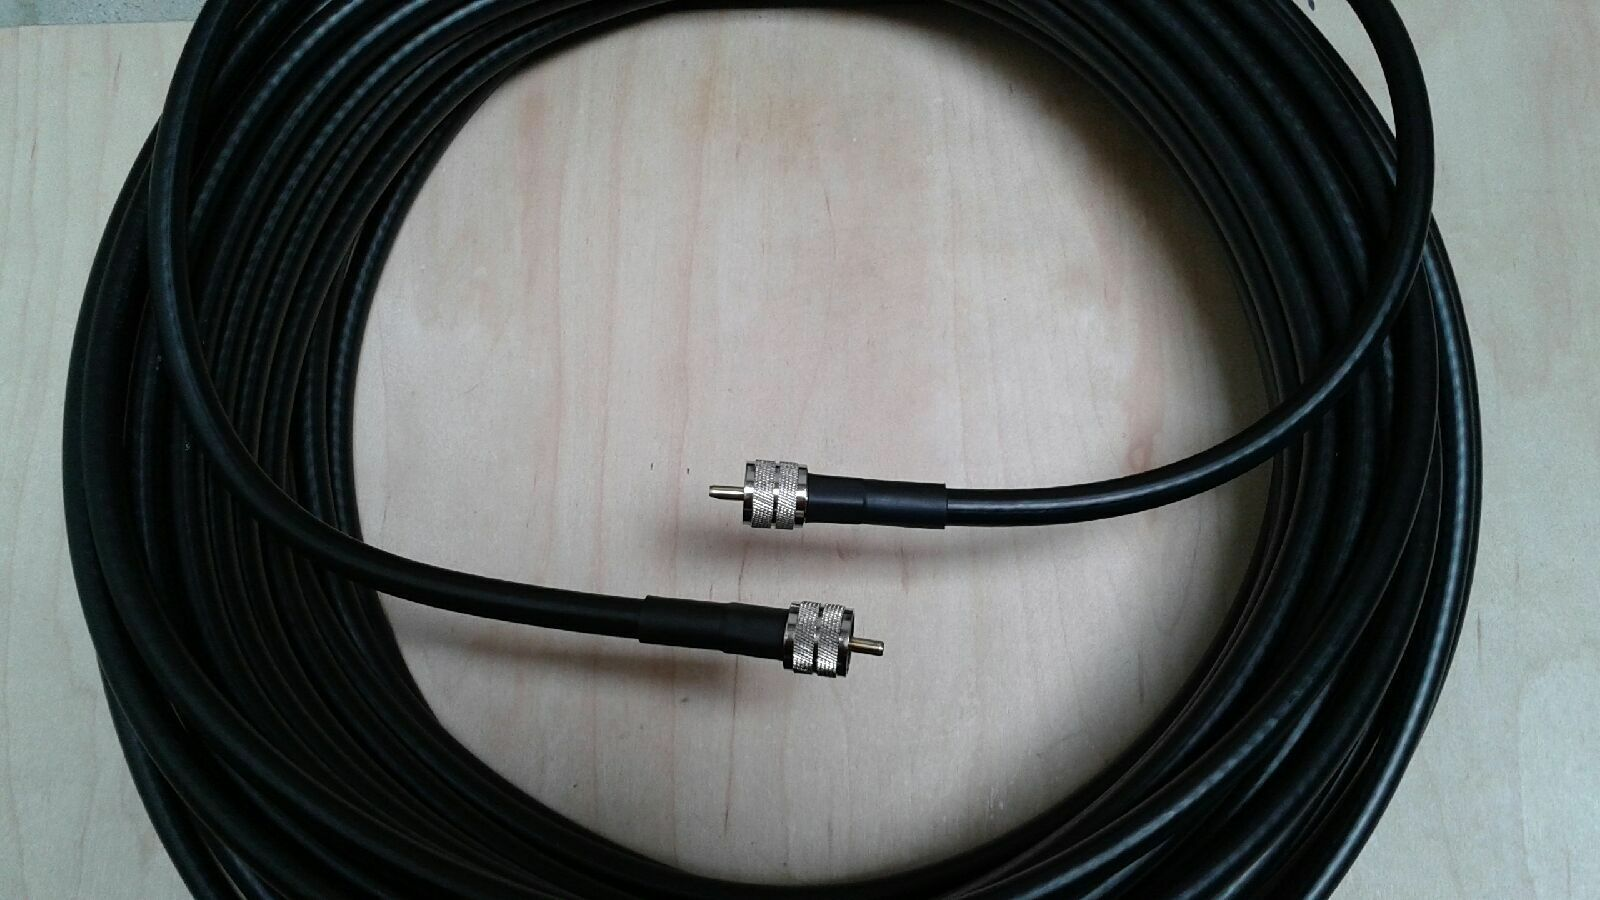 US MADE   LMR-400  HAM Radio Antenna Coax Cable PL259  to  PL259  100 FT. Buy it now for 117.00